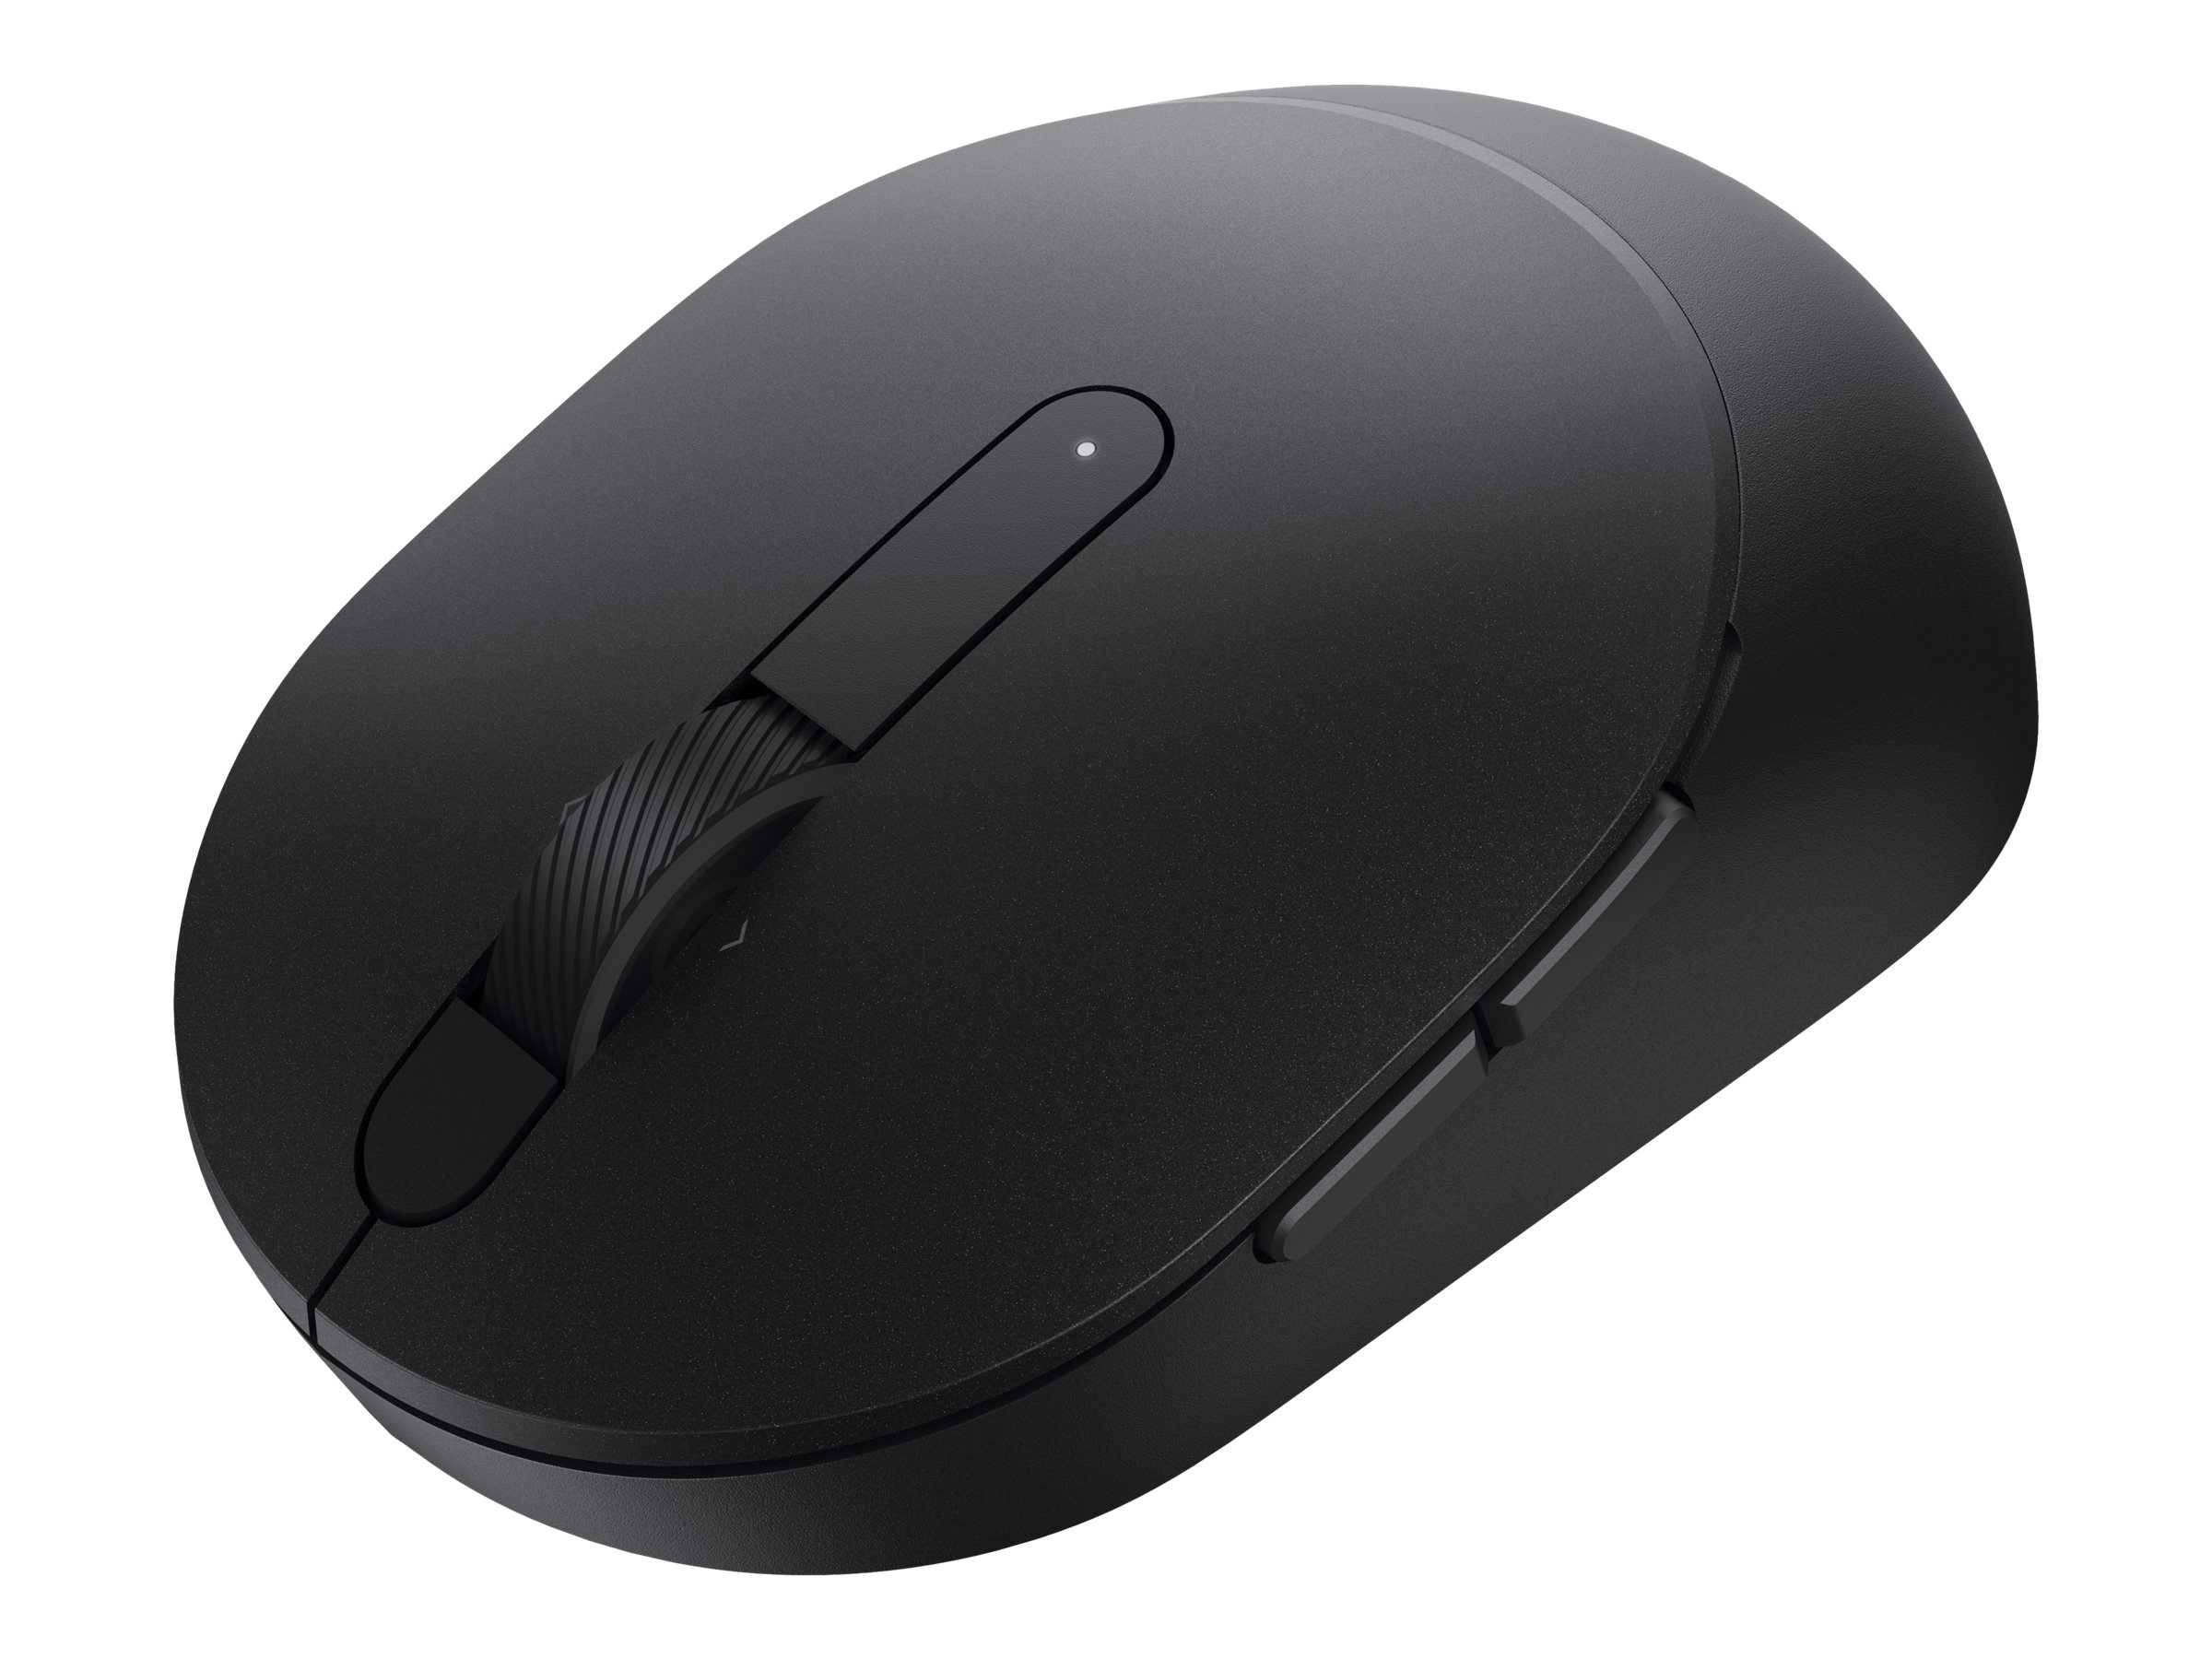 Dell Mobile Pro MS5120W - mouse - 2.4 GHz, Bluetooth 5.0 - b